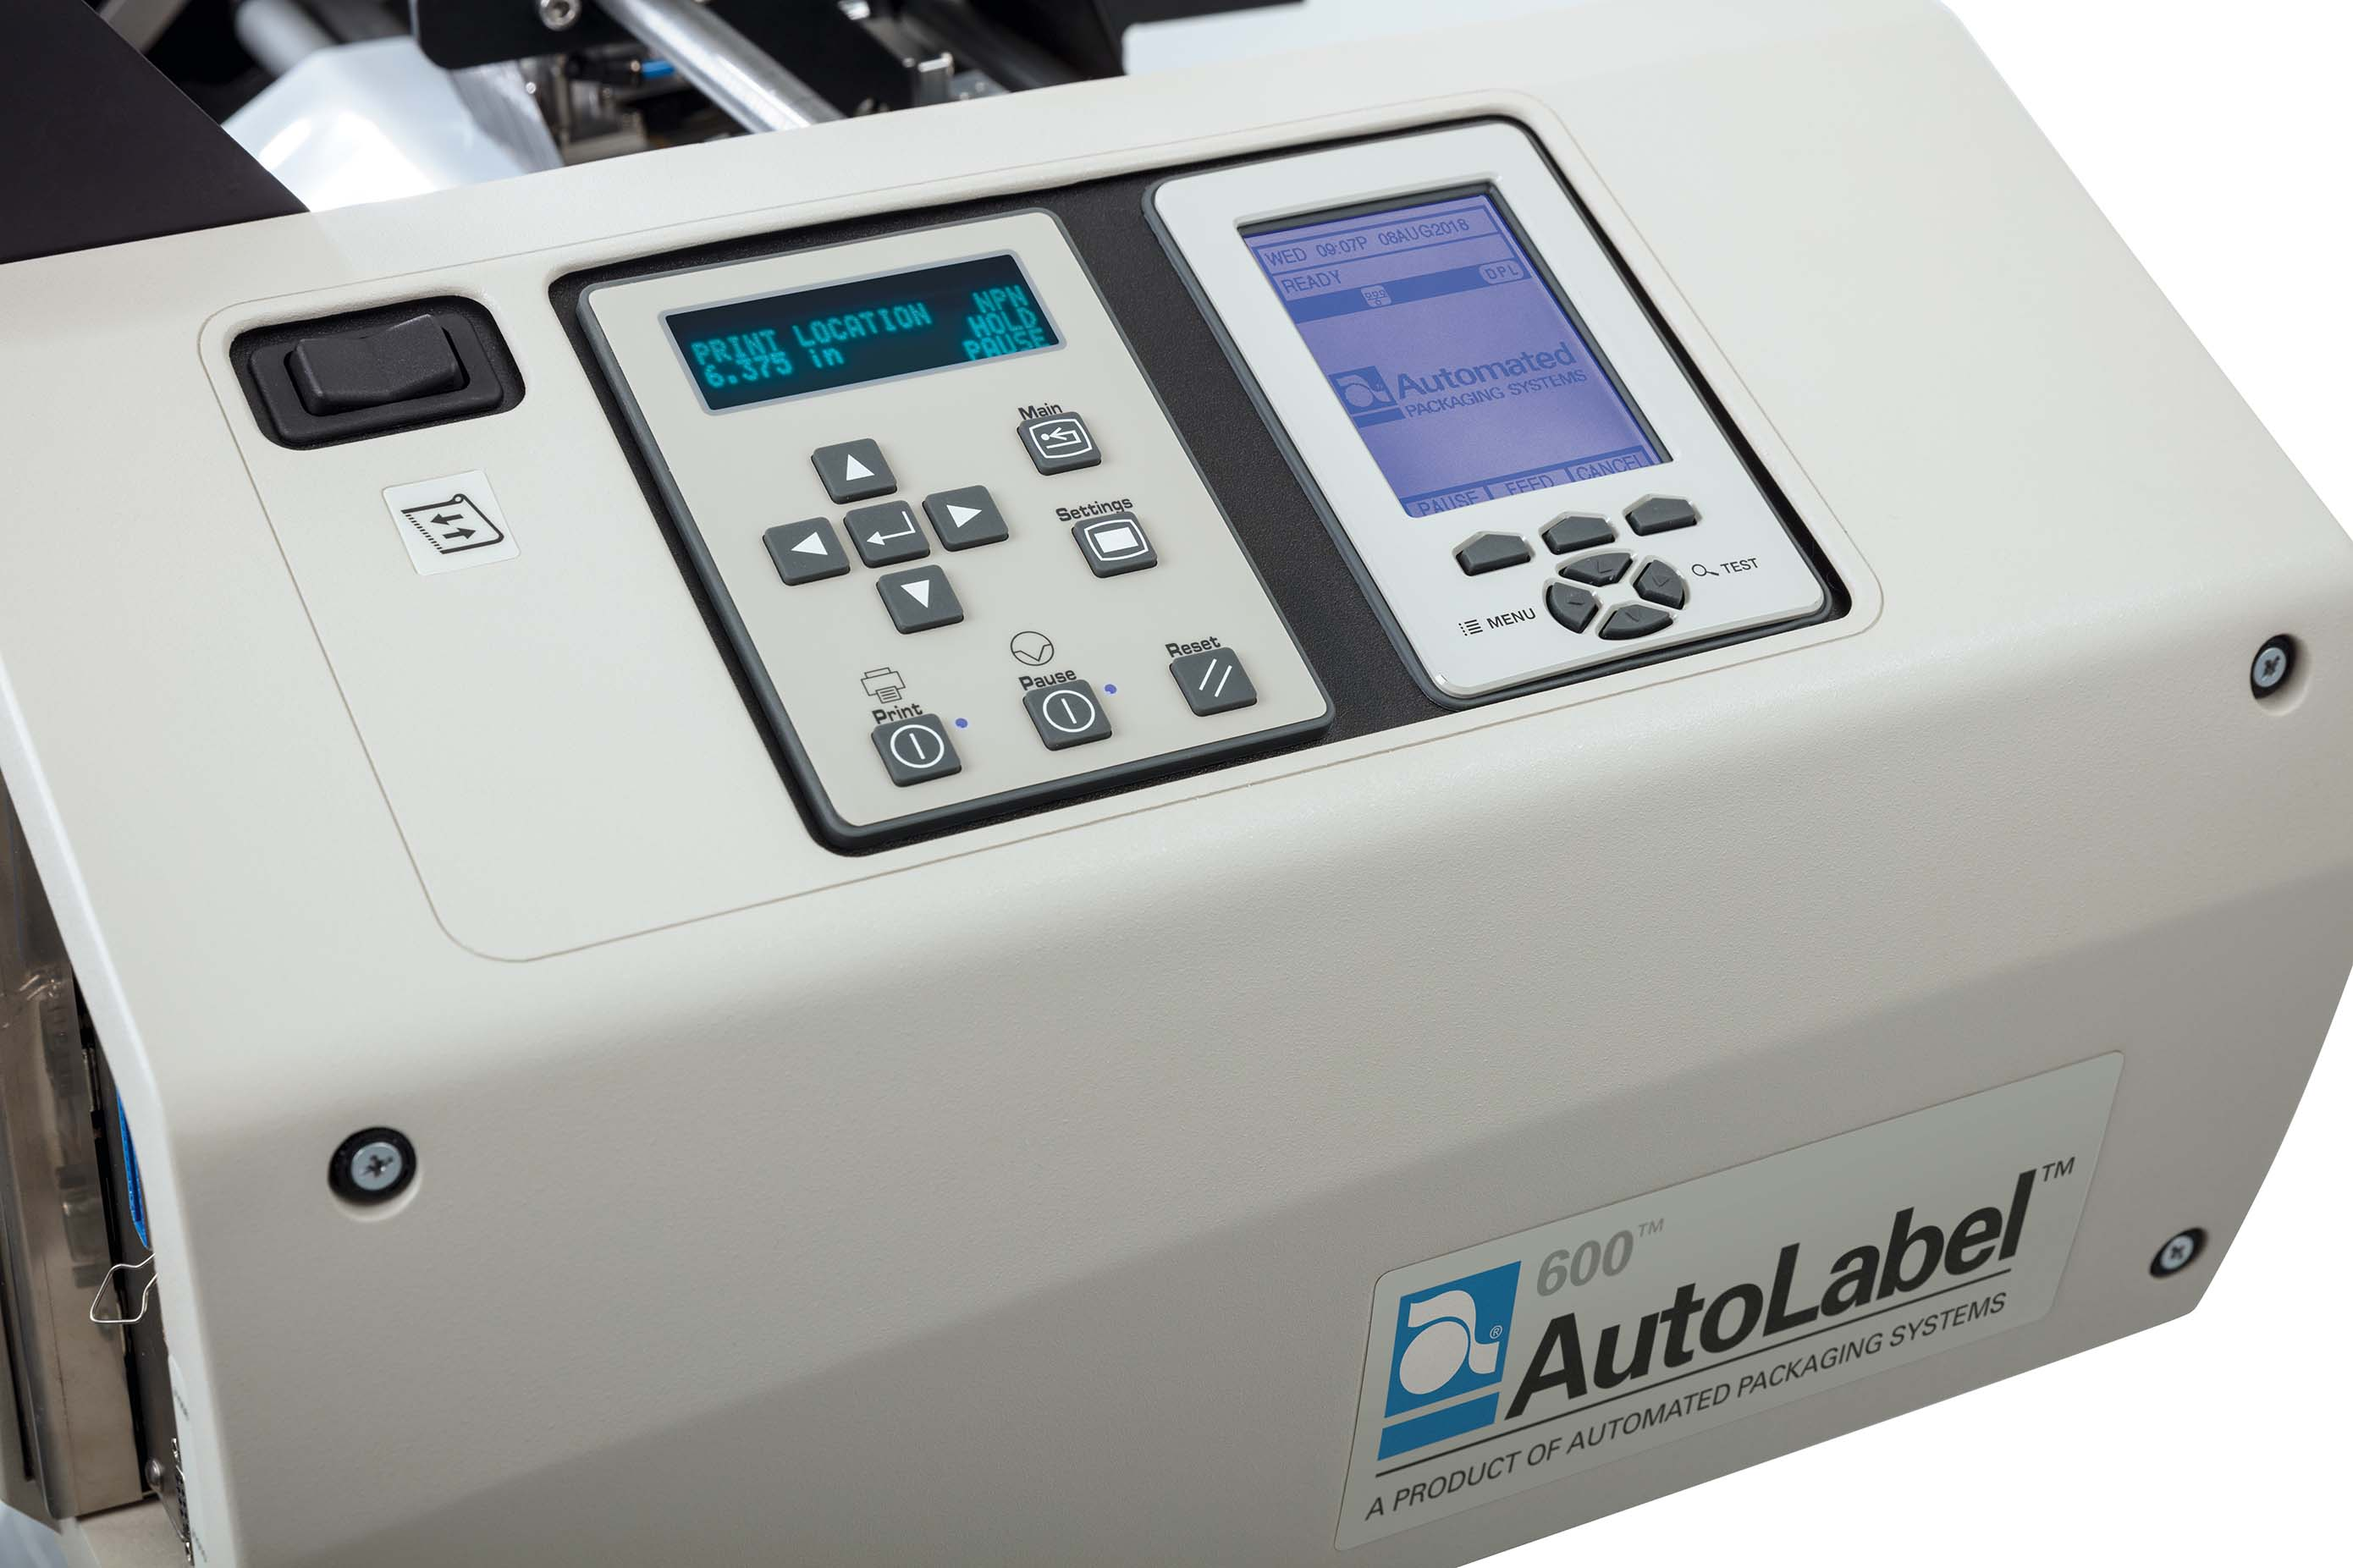 AutoLabel 600 high resolution inline printer control panel